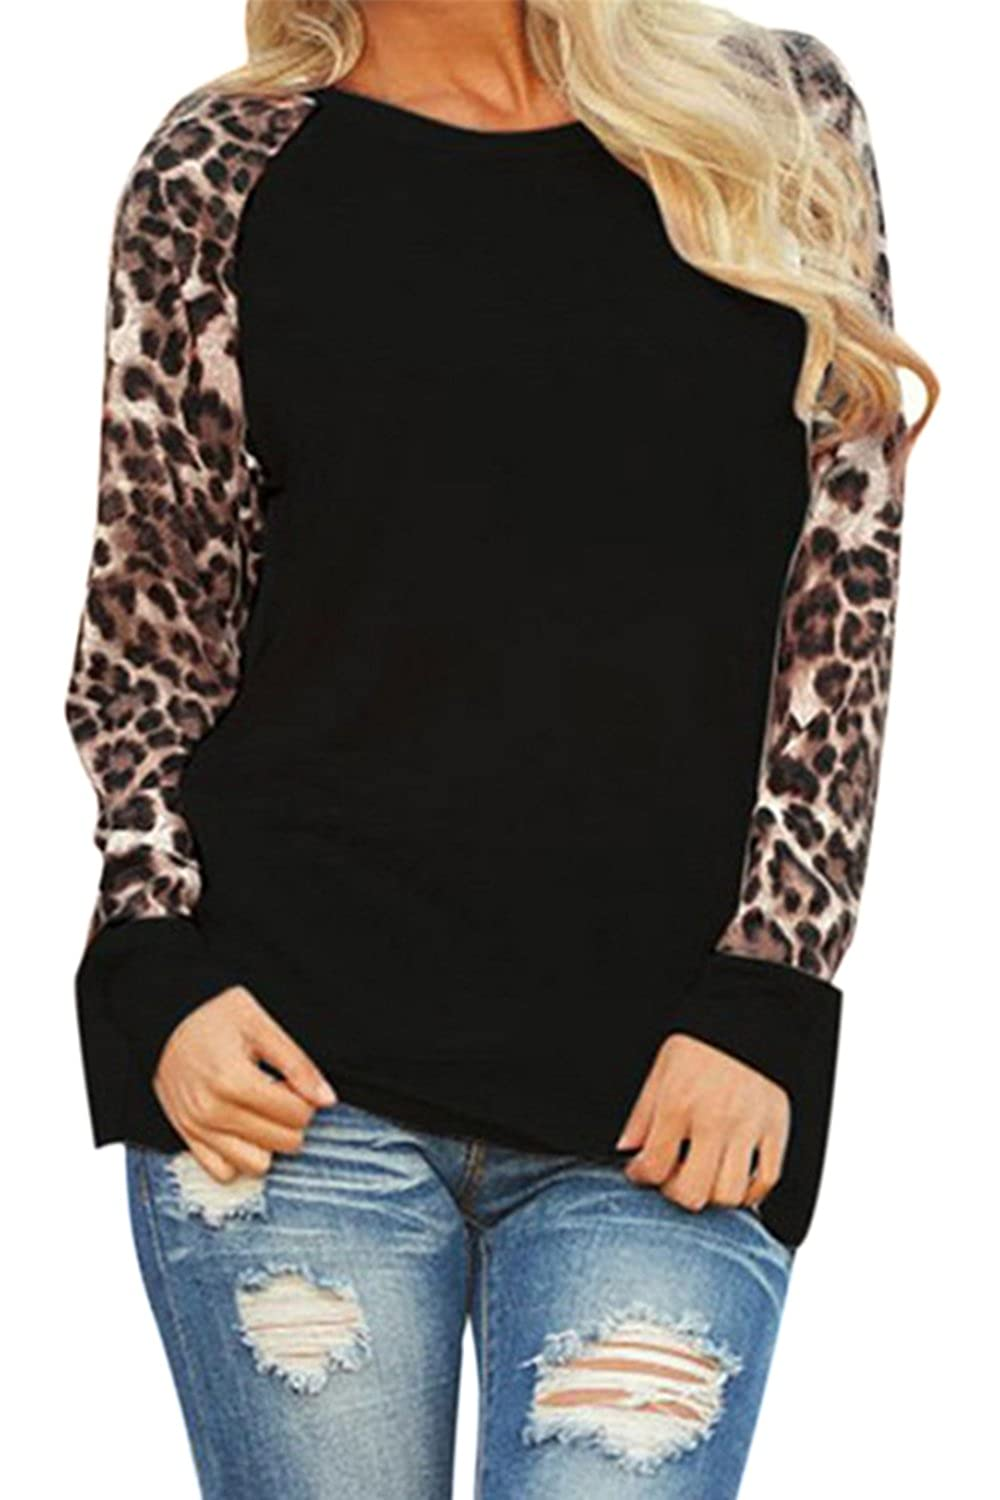 Women's Clothing T-shirts 2018 Brand New Fashion Top Women Sexy Ladies Casual Basic Animal Leopard Printed Long Sleeve T Shirt Top 6-14